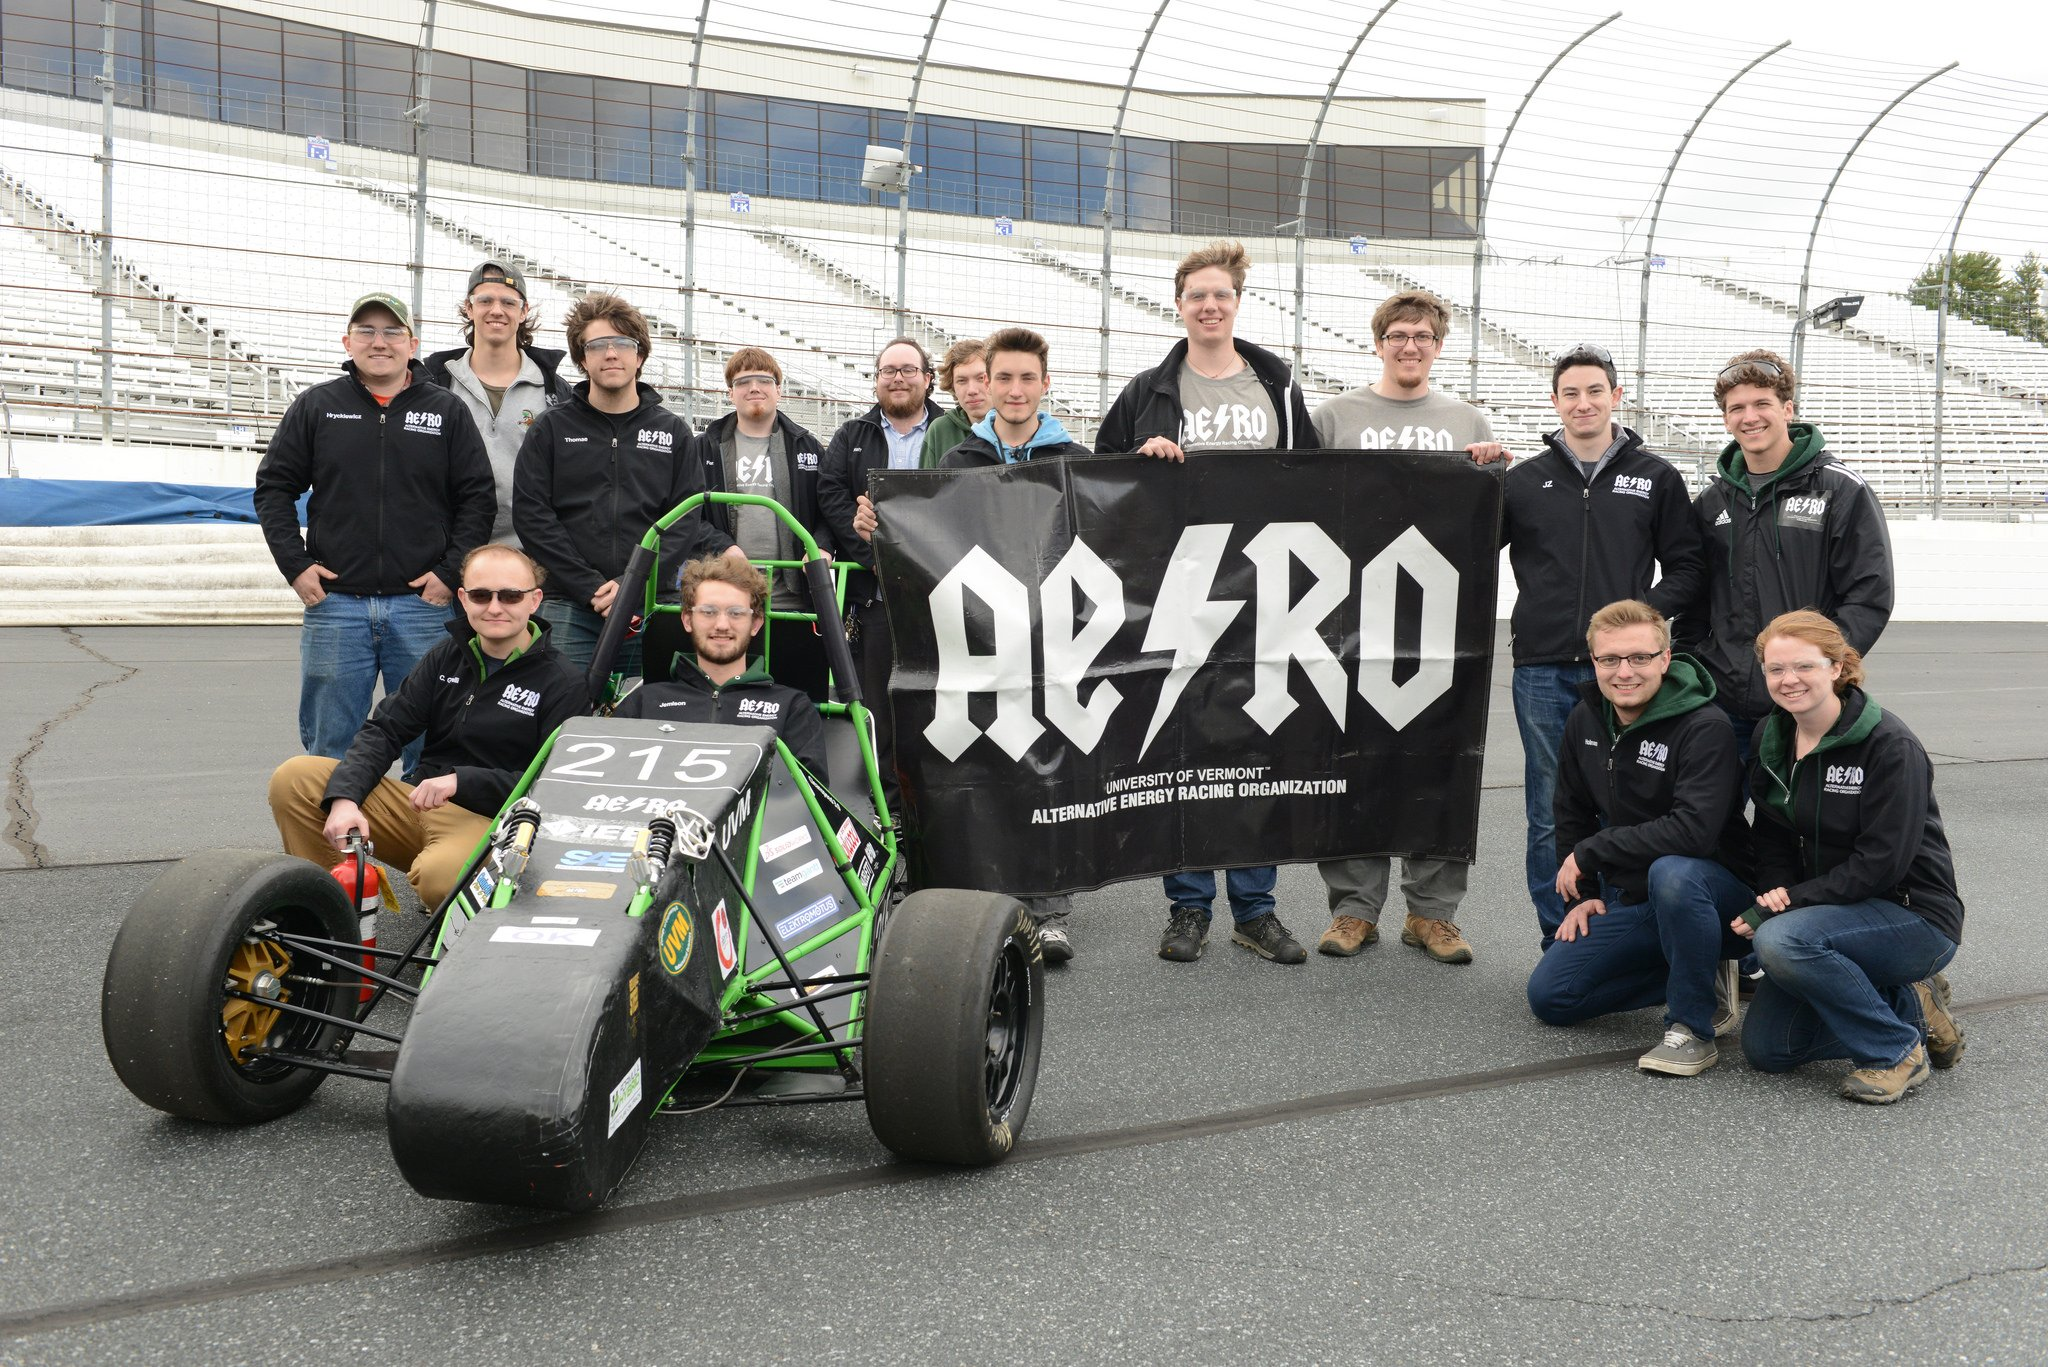 Congrats to University of Vermont @uvmvermont for taking 3rd place in electric #formulahybrid17! @bfp_news https://t.co/EeqqvuHcy7